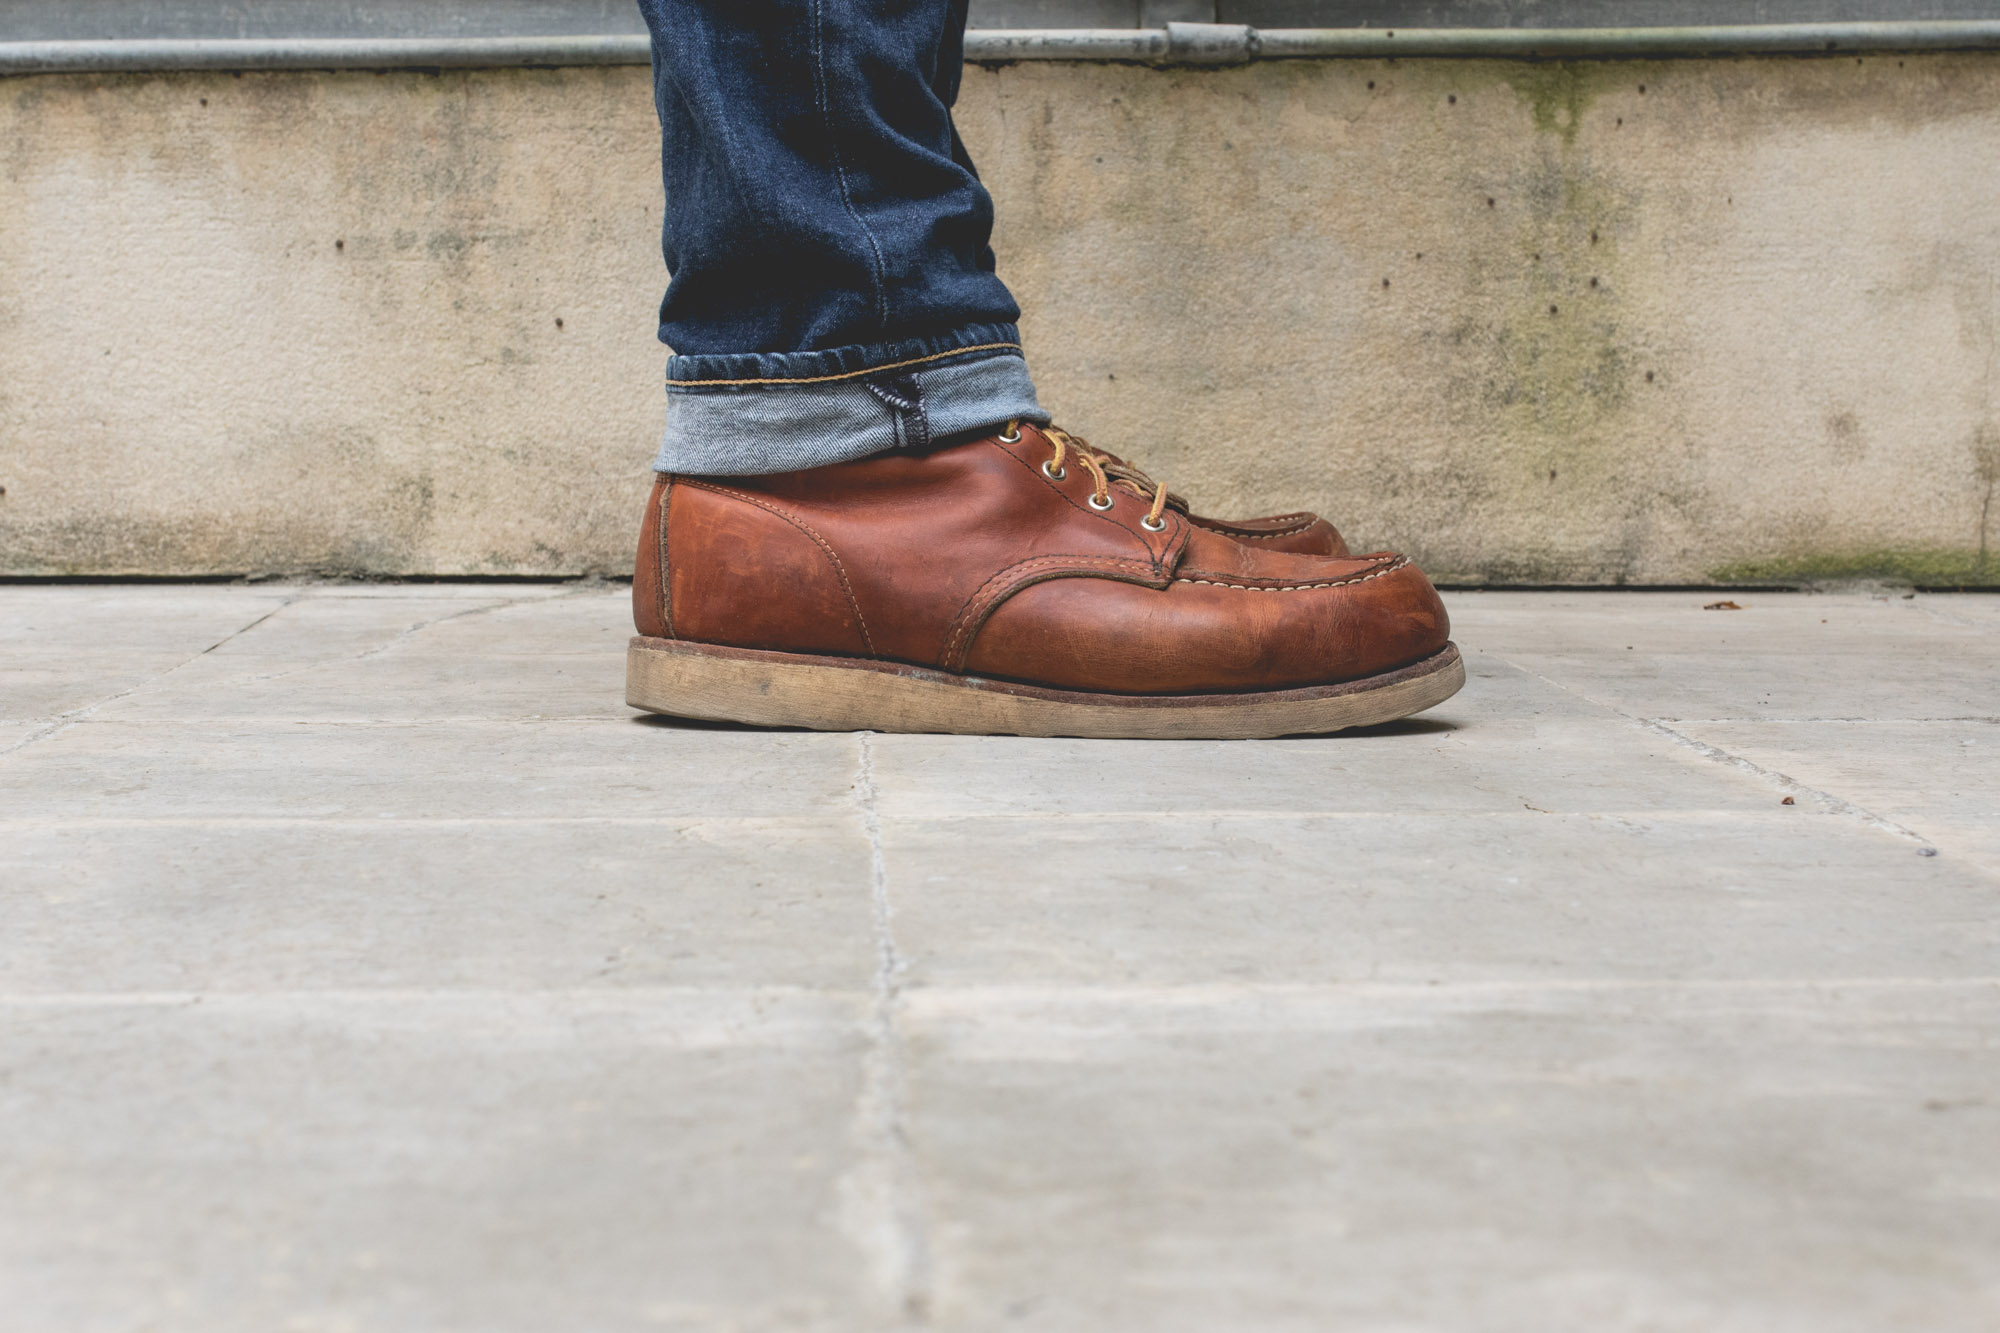 Red Wing shoes - Classic Moc Toe